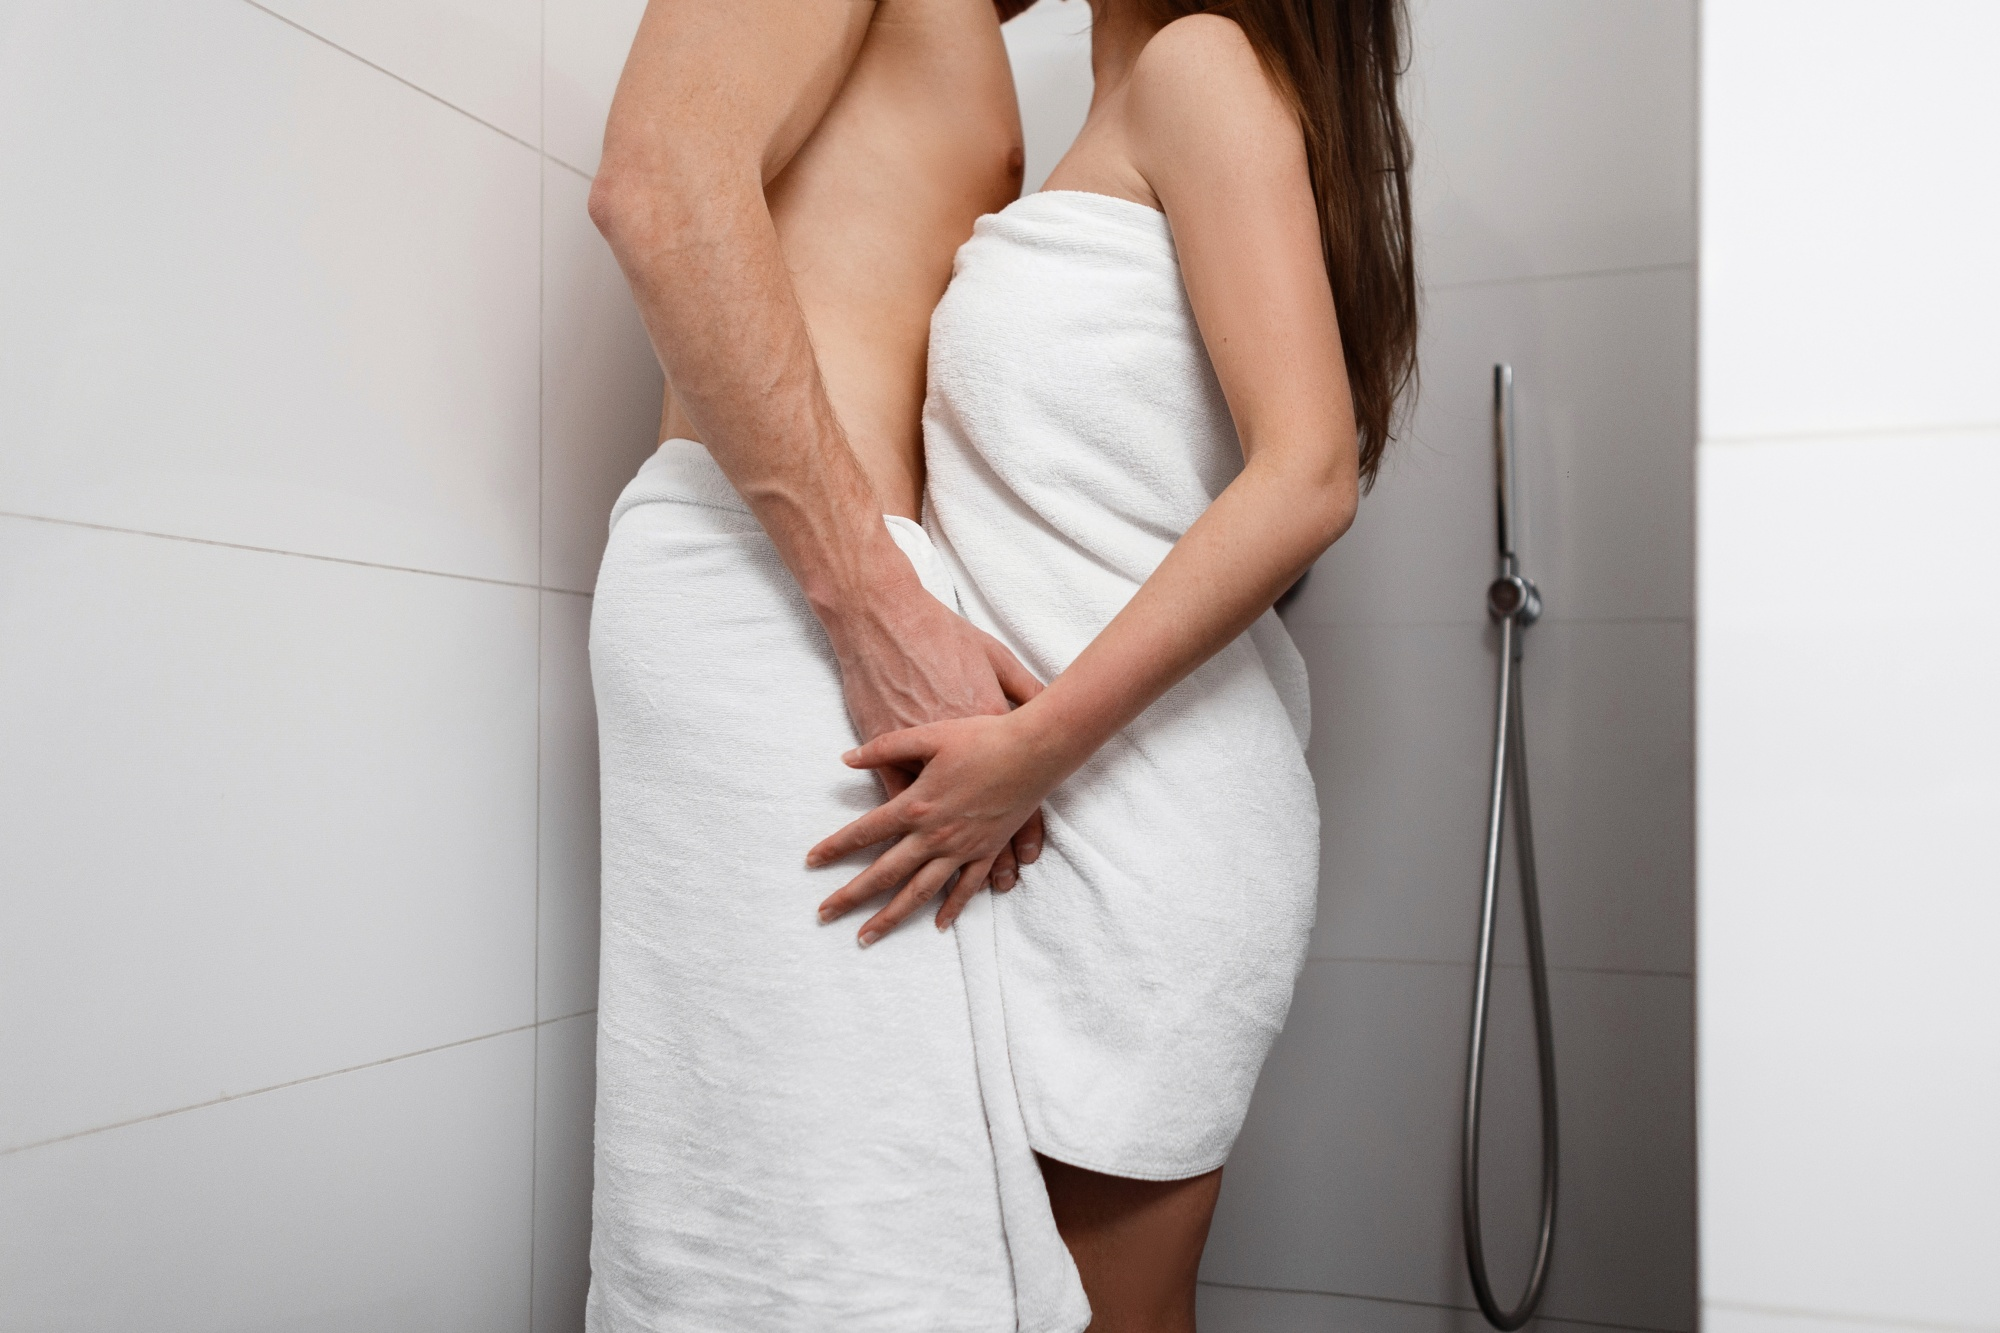 Let's talk about sex when being busy interferes with getting busy, a couple taking a shower together